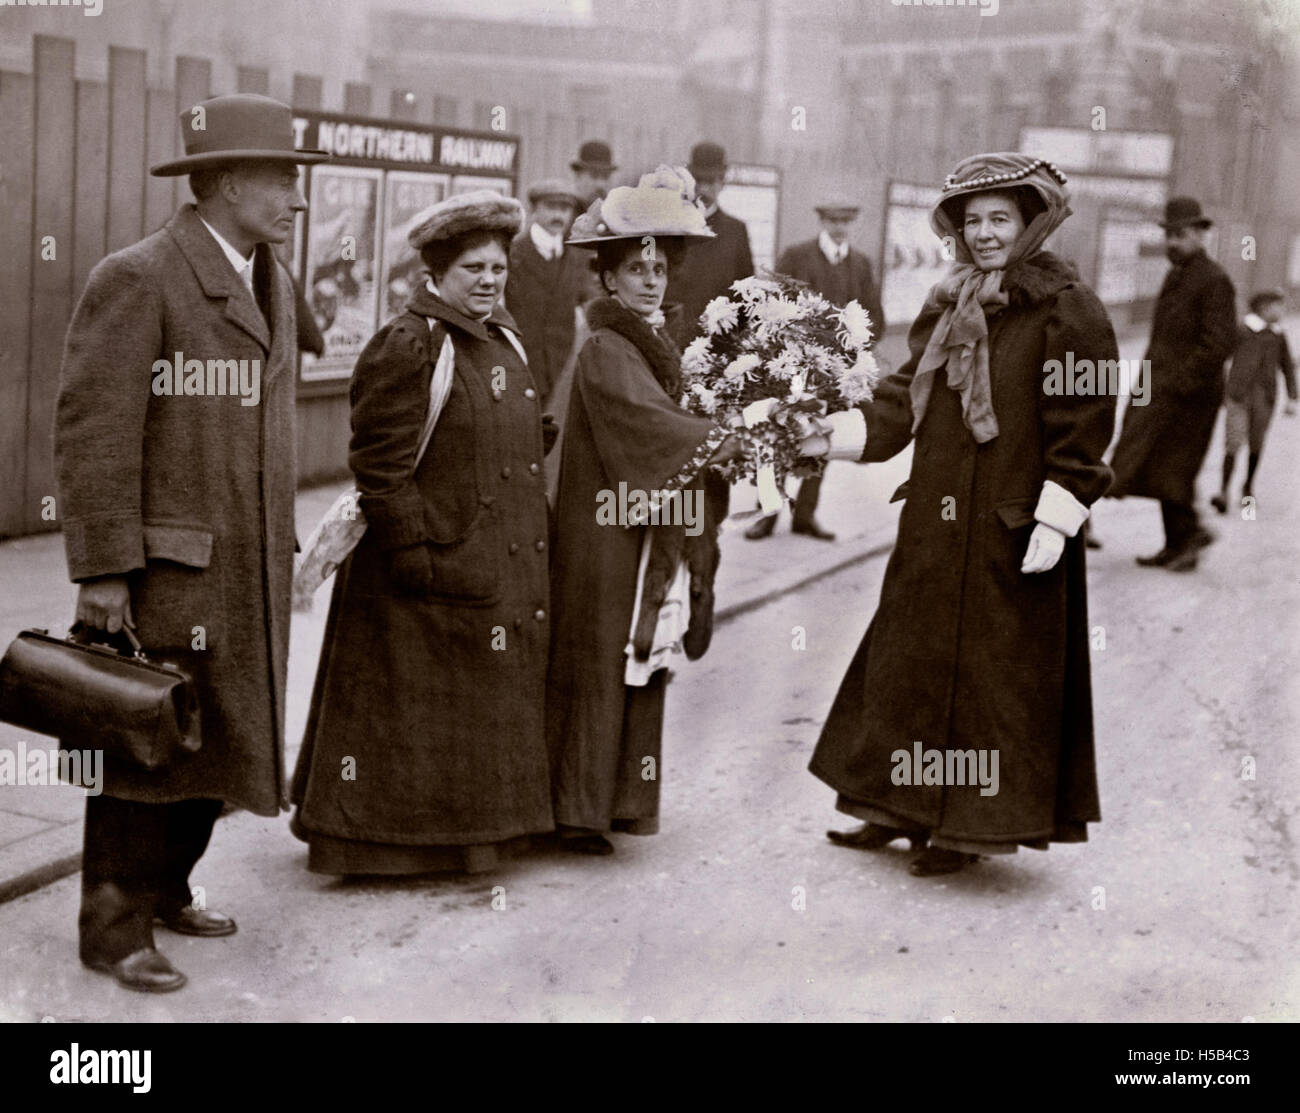 Emmeline Pethick Lawrence, Jennie Baines, Flora Drummond e Federico Pethick Lawrence, c. 1906-1910. Foto Stock